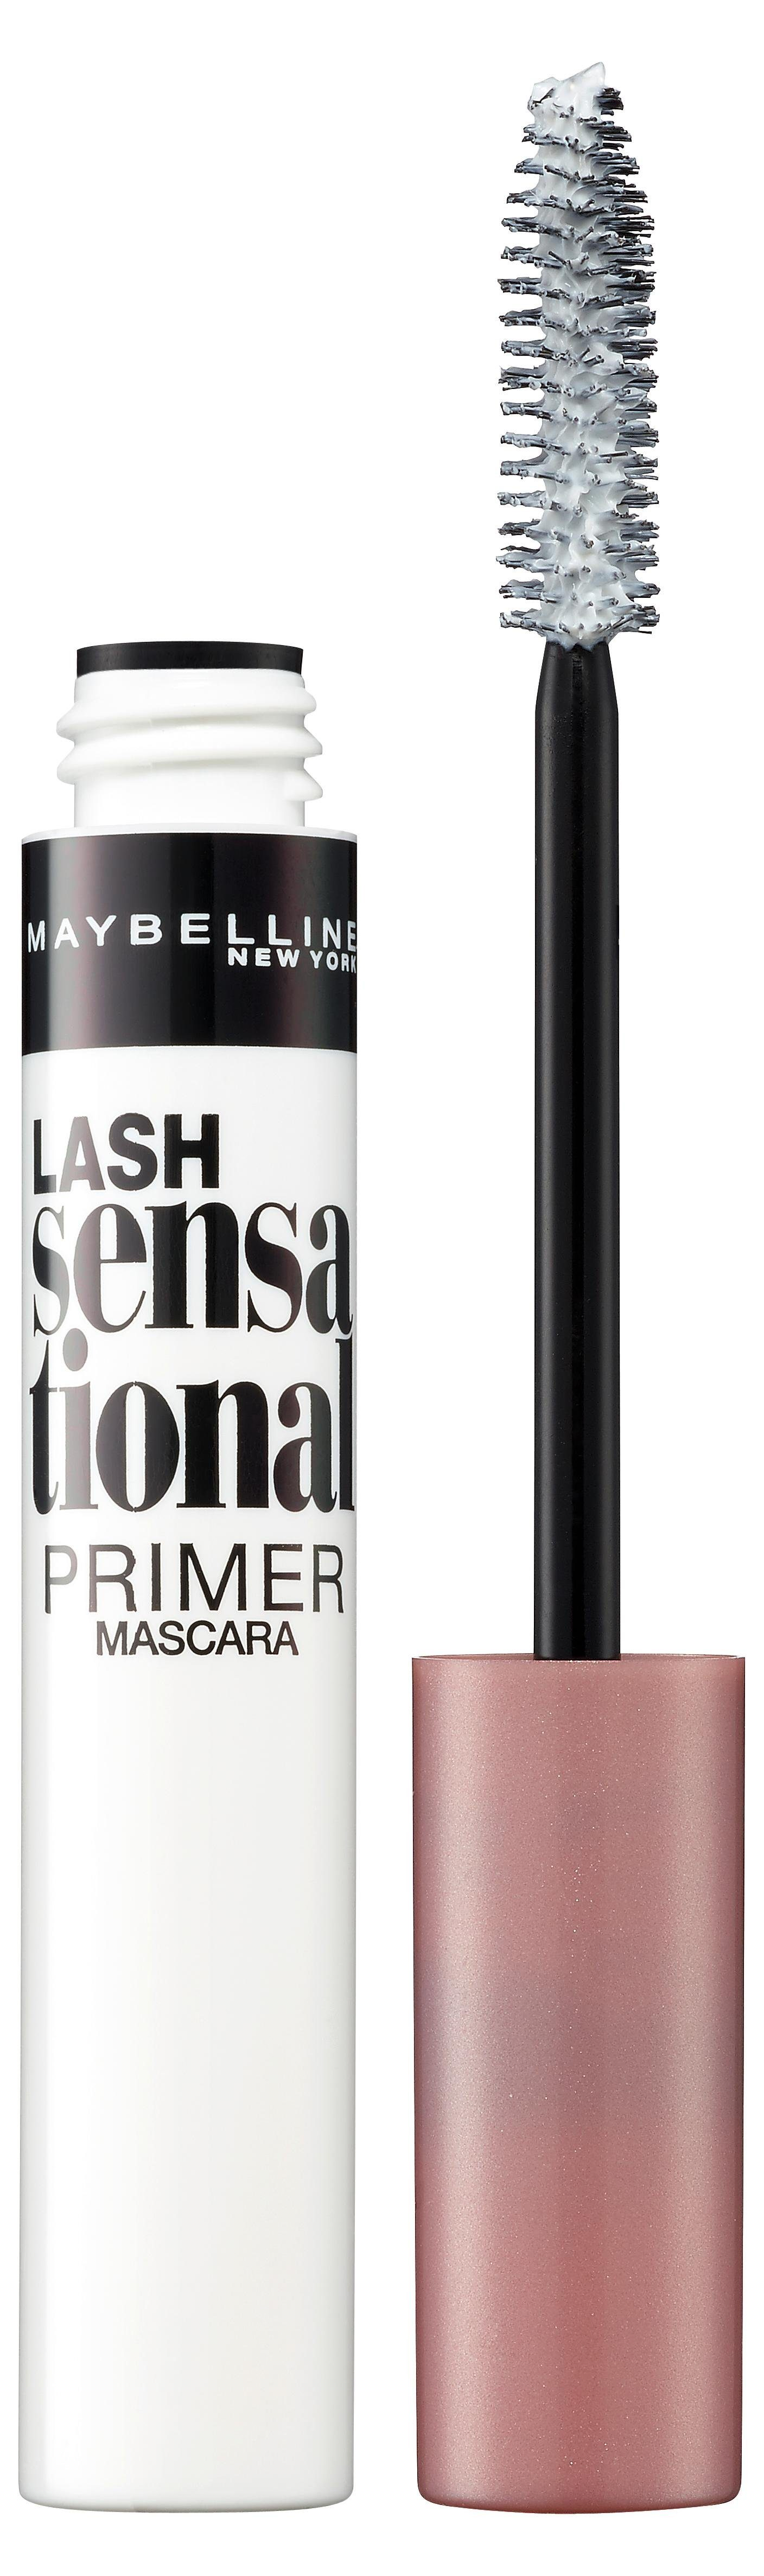 Maybelline New York, »Lash Sensational Primer«, Mascara